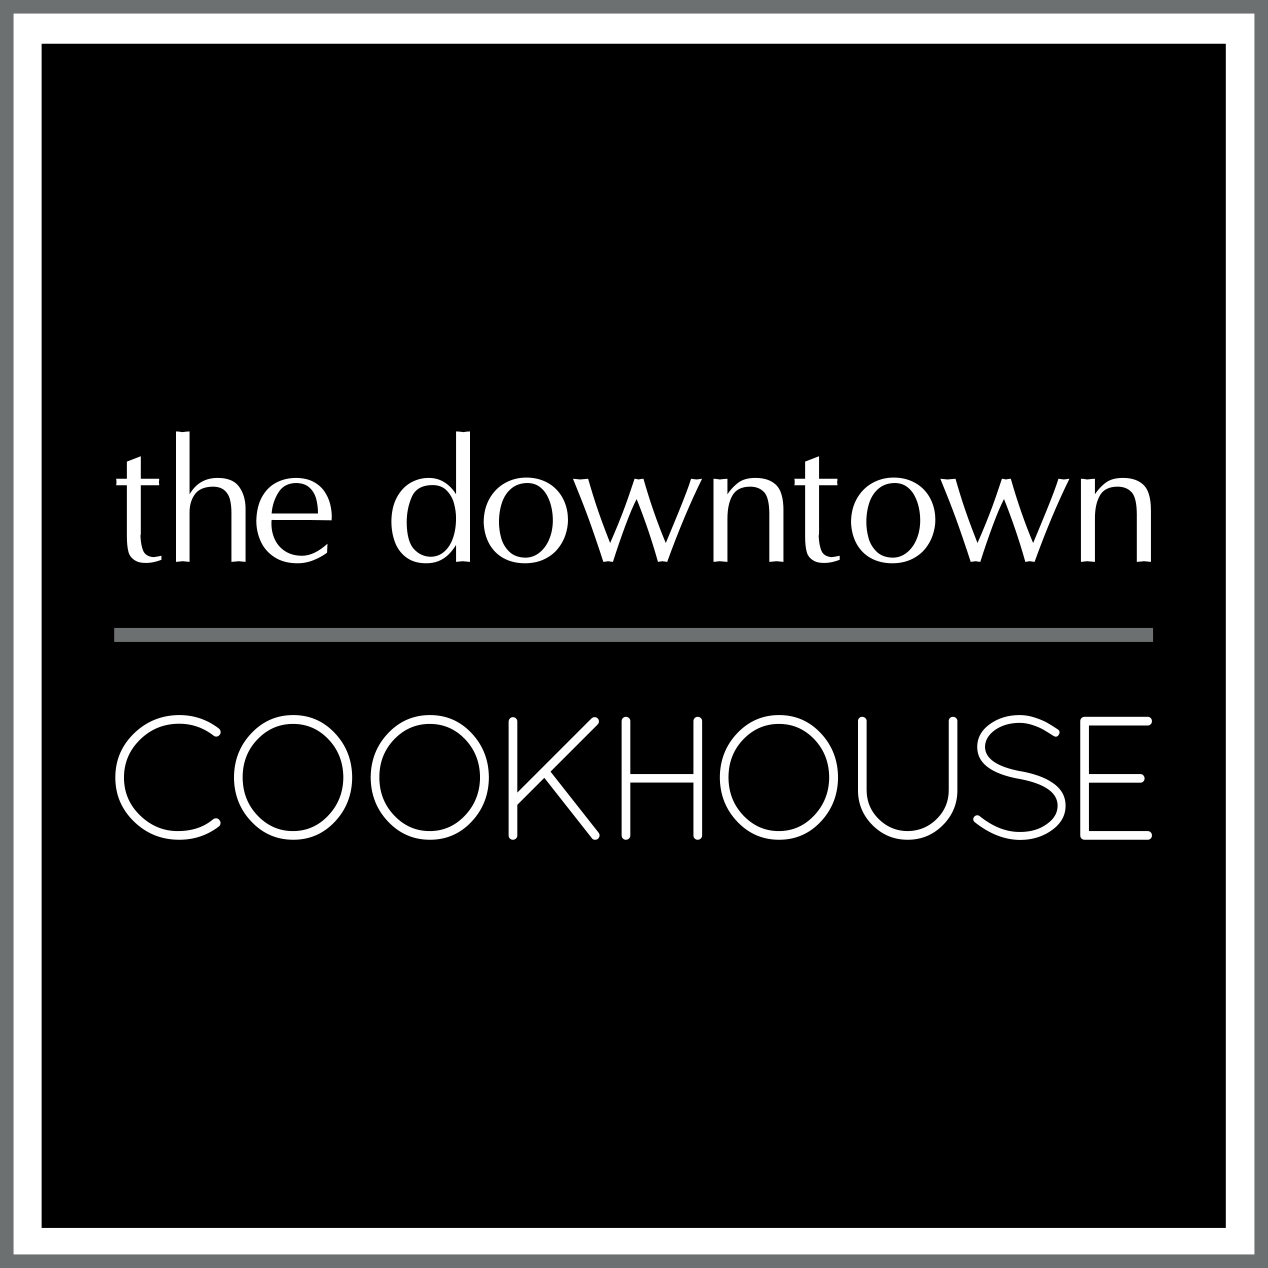 The Downtown Cookhouse